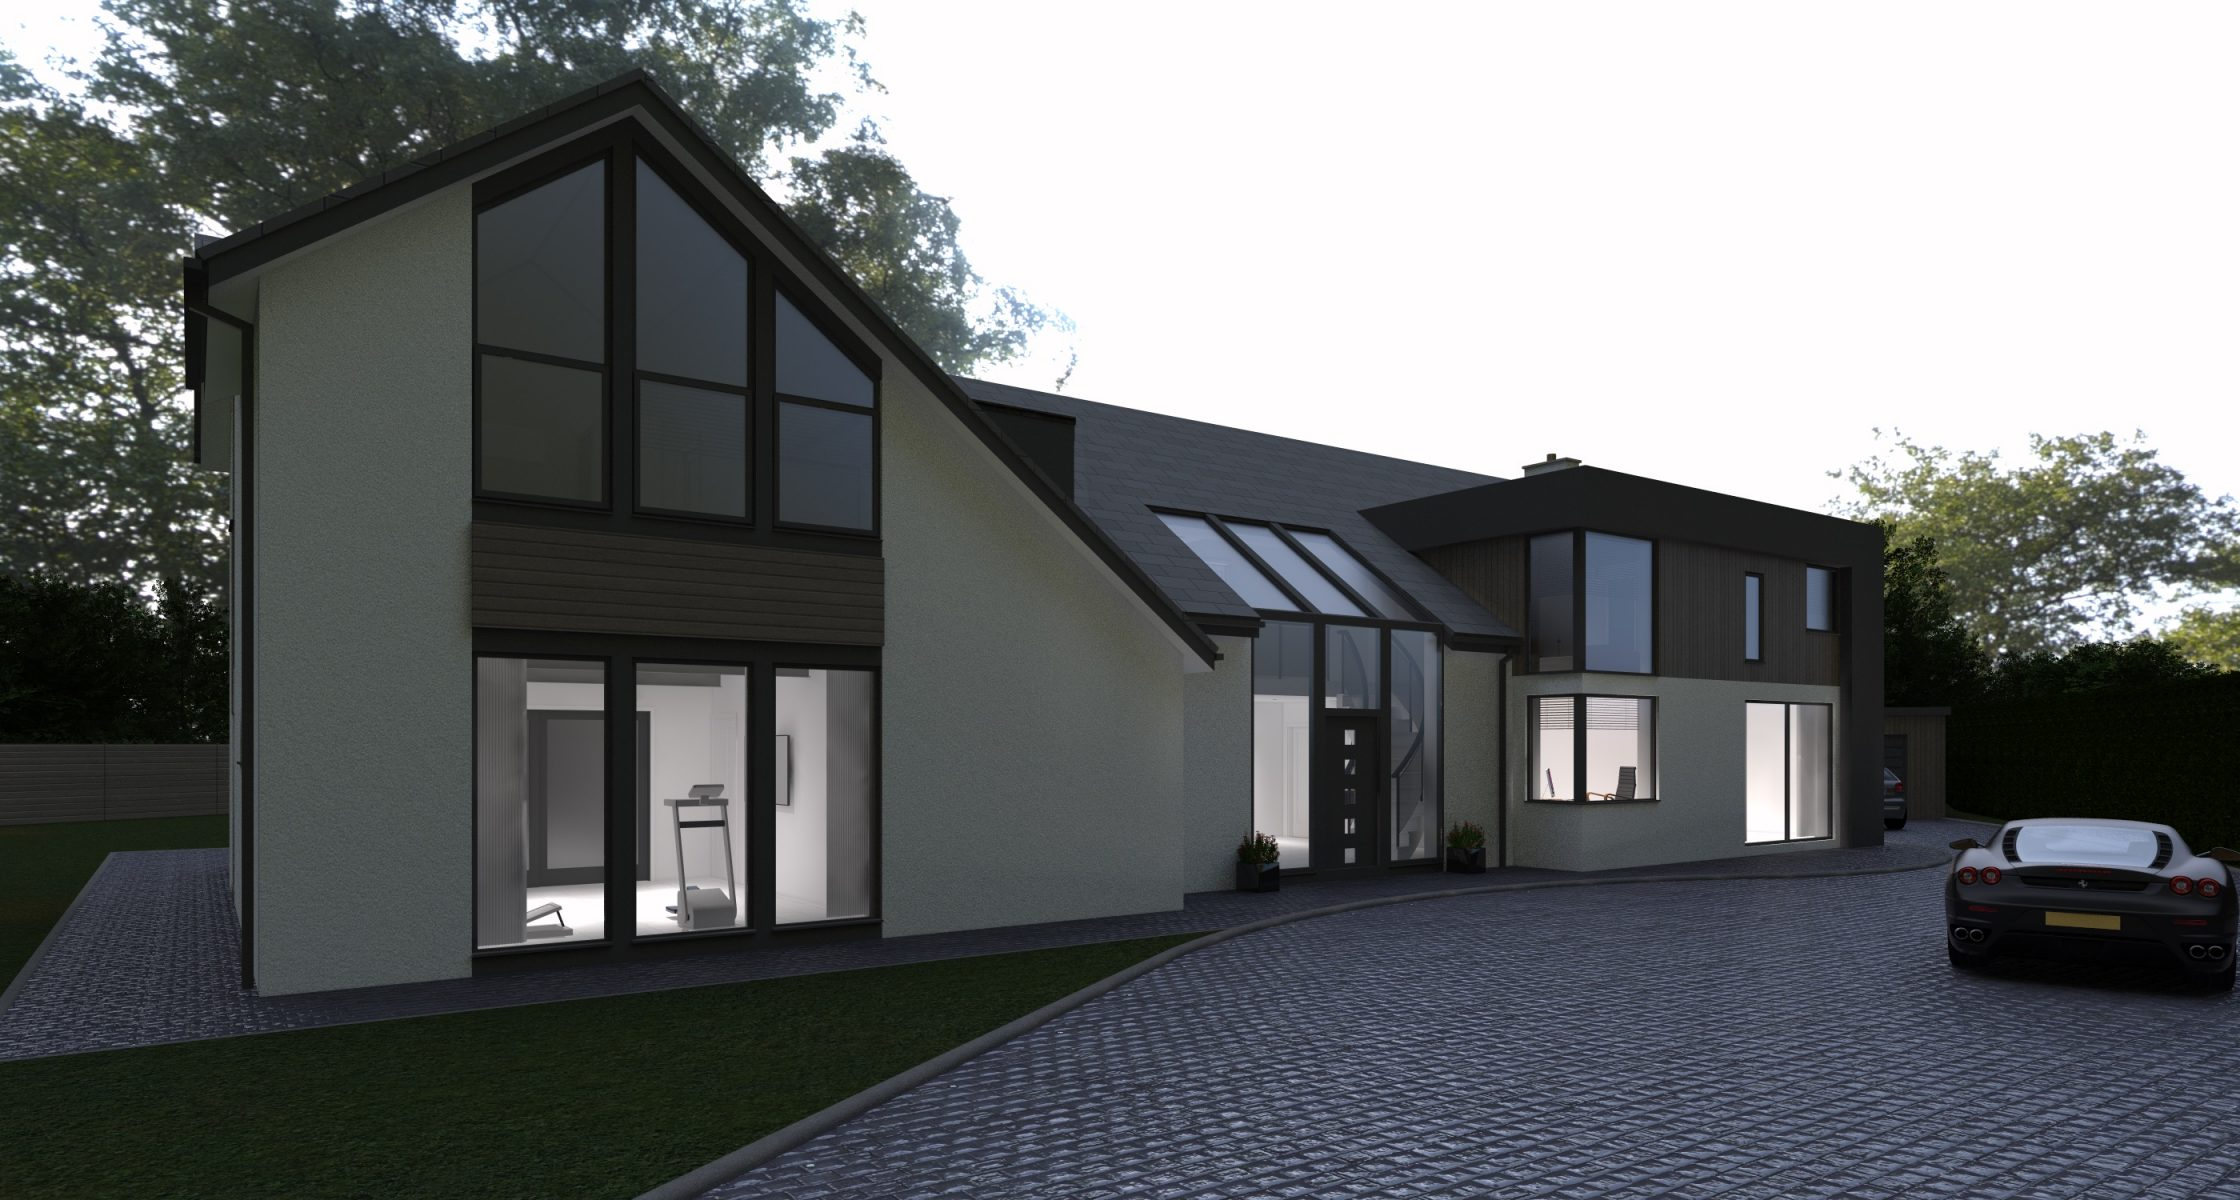 Proposed Front View Brackenwood, Brocton - Lime Architecture